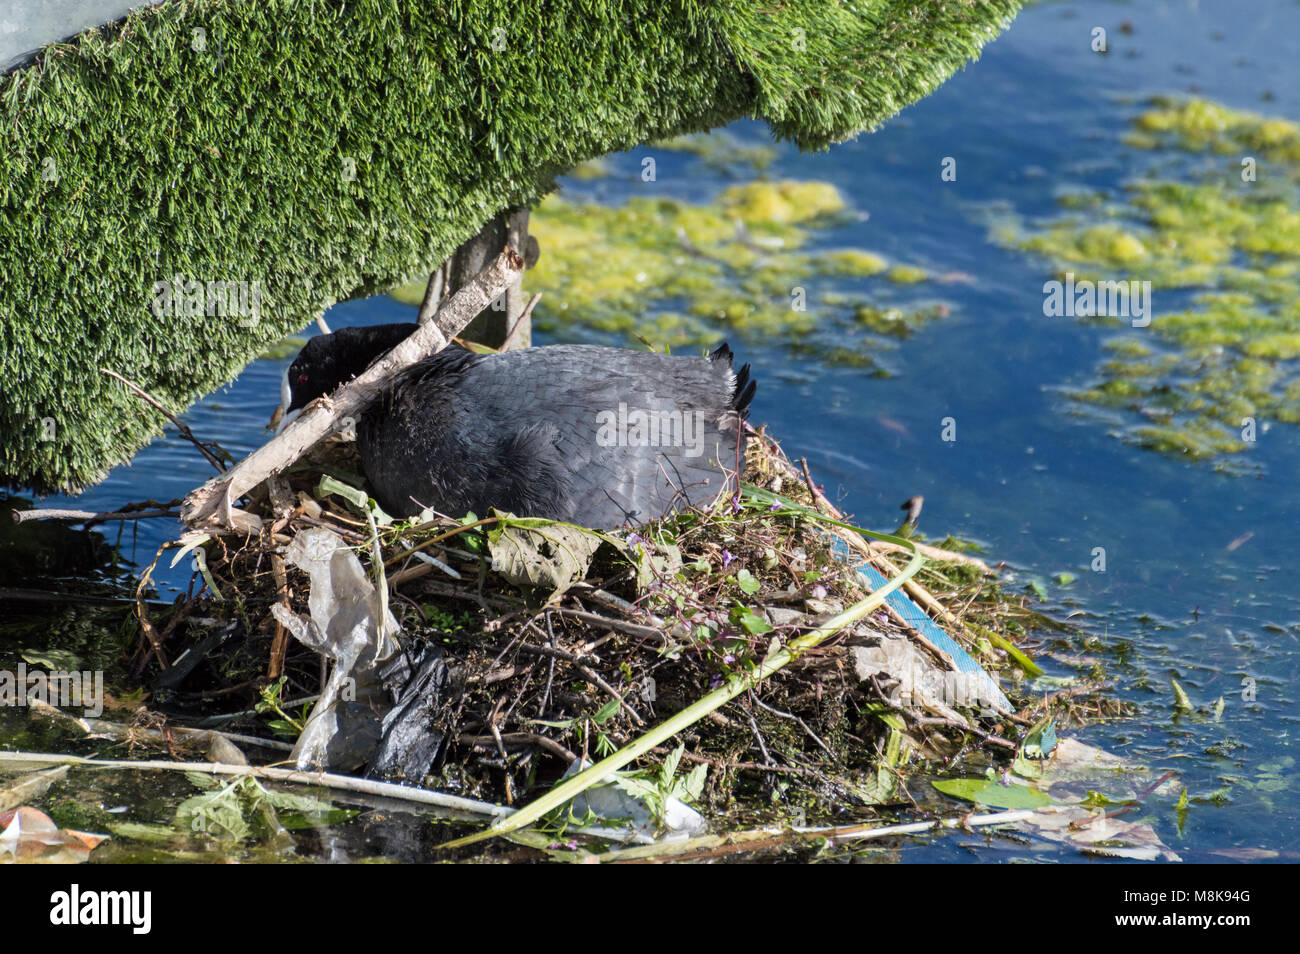 A close up of a single Coot with a stick in it's beak, building a nest with twigs, sticks, lichen, moss and - Stock Image